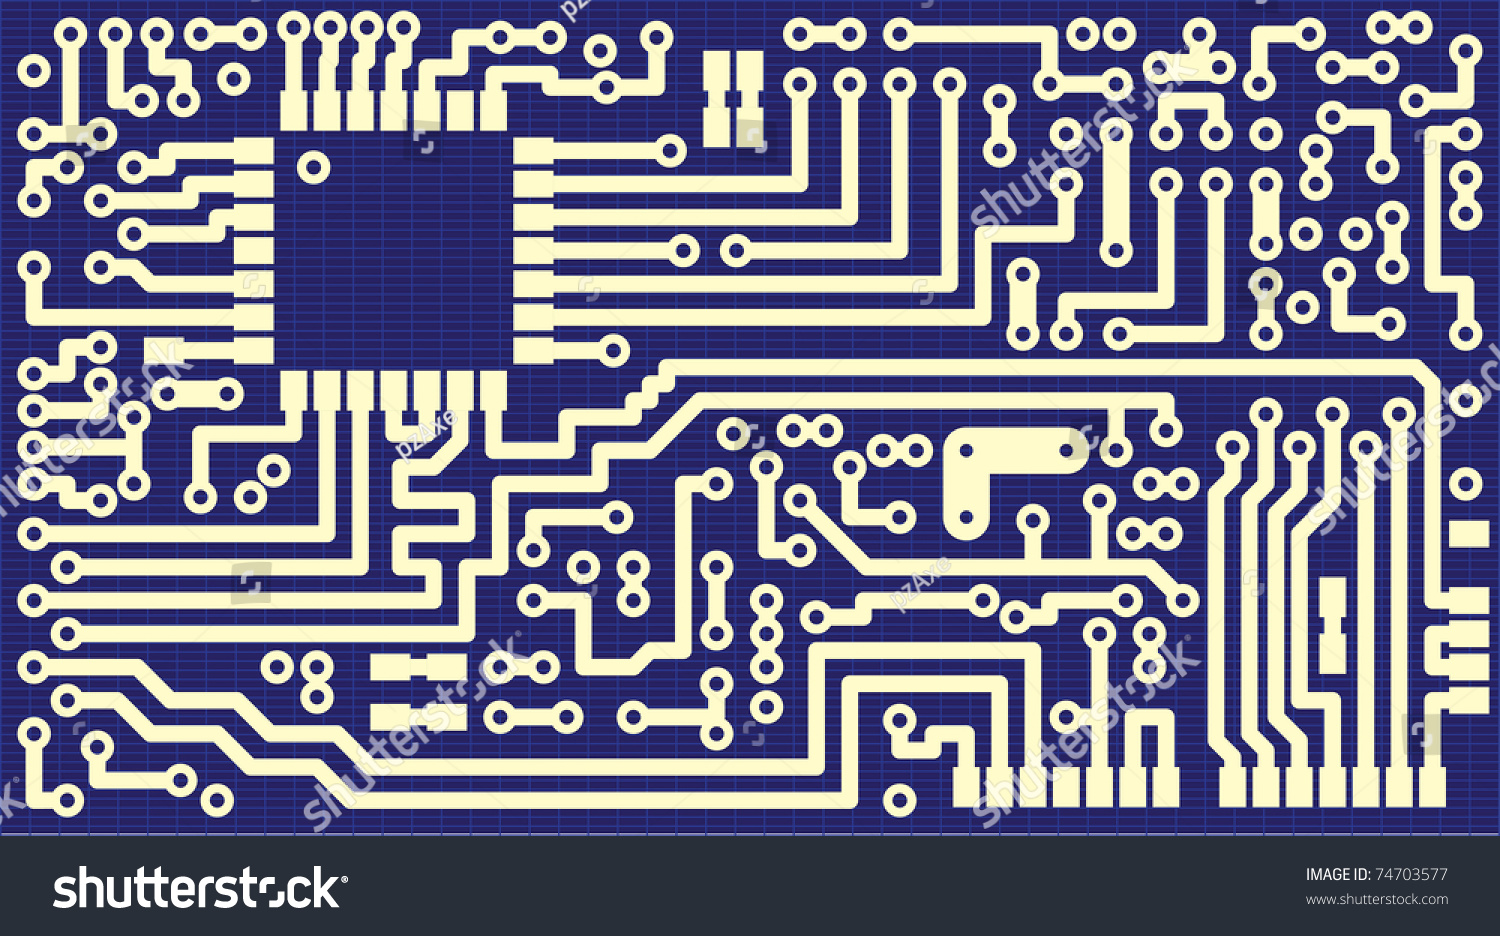 Background Business Cards Circuit Board Illustration Stock ...